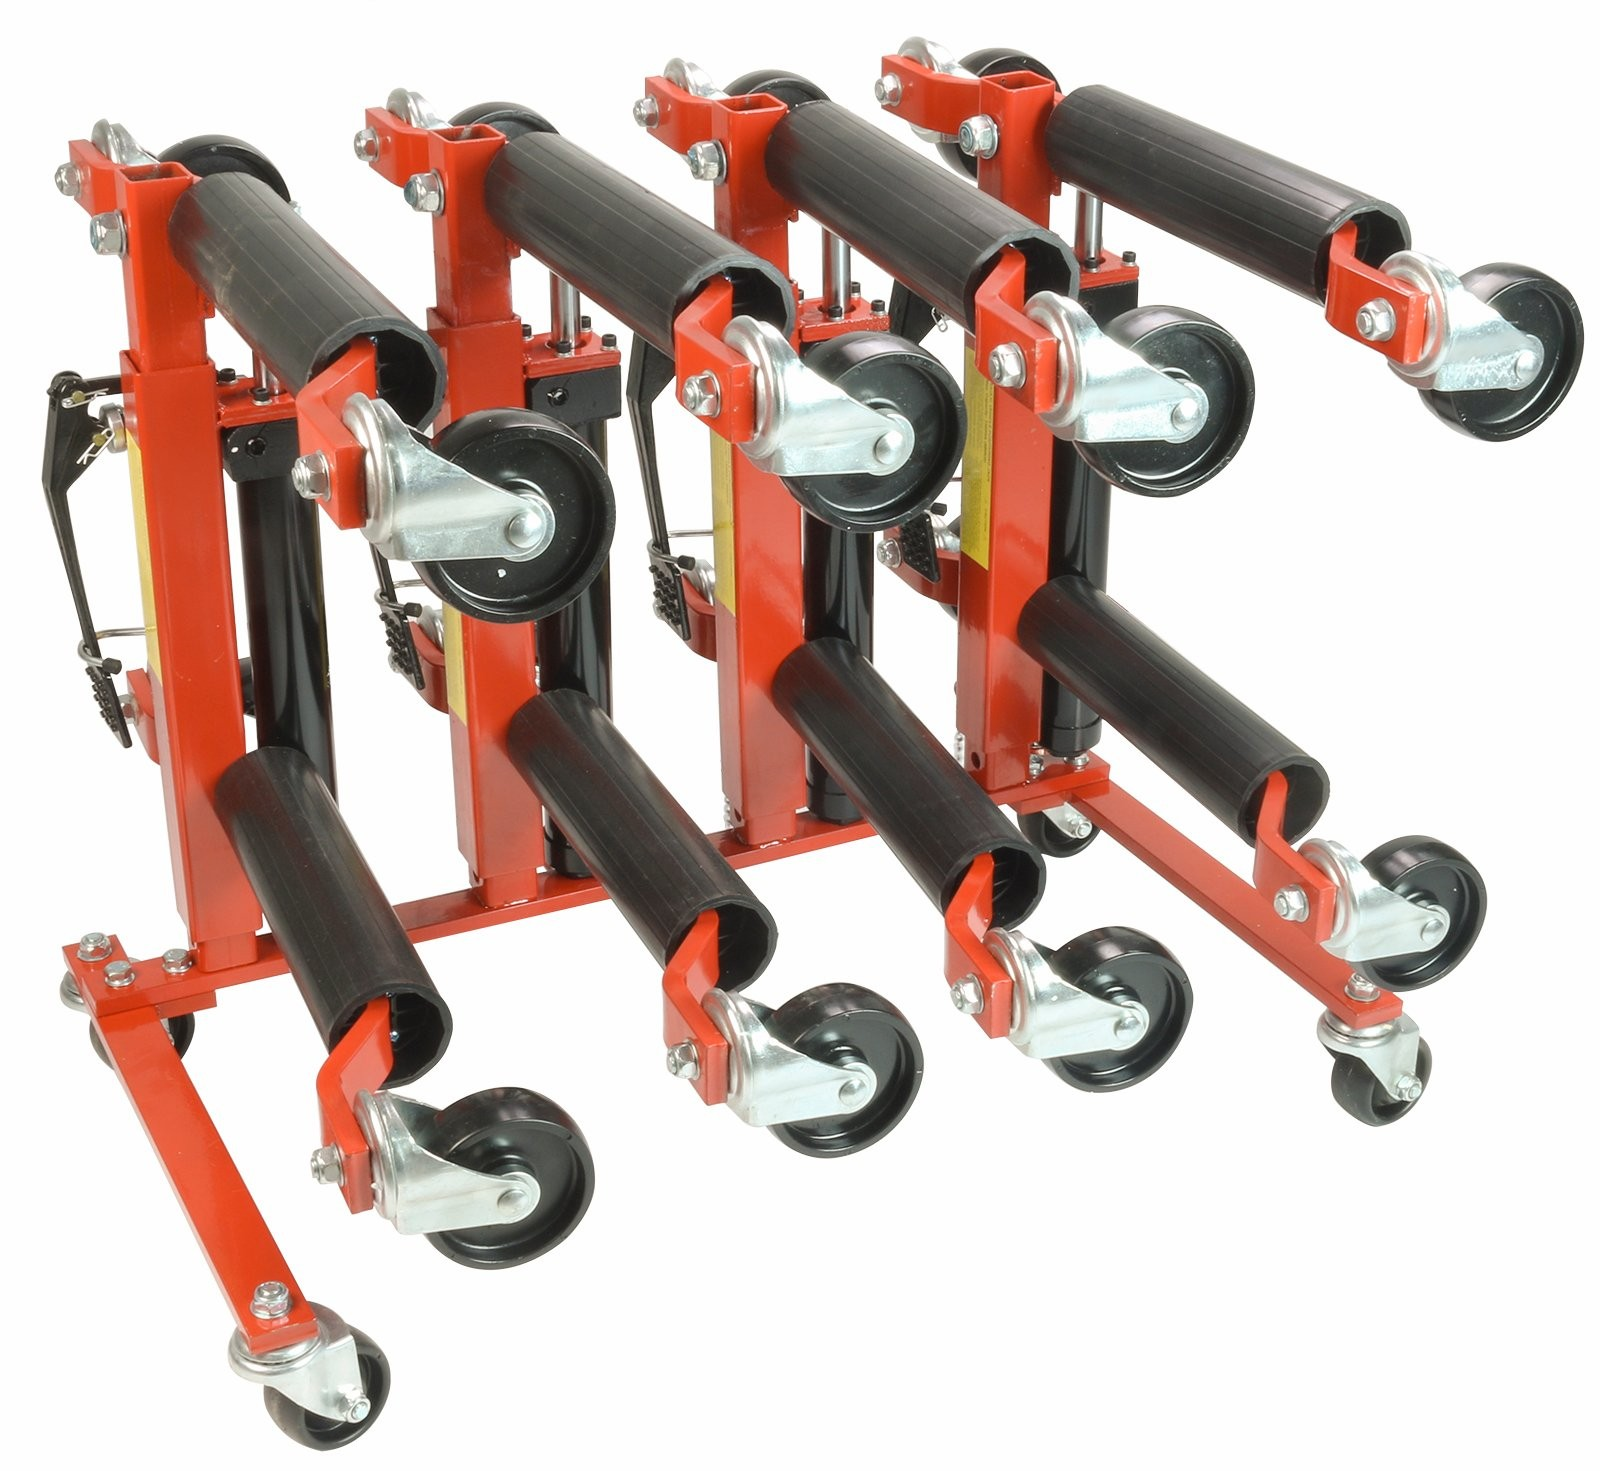 (4) Dragway Tools 12in. Vehicle Positioning Jack with Stand